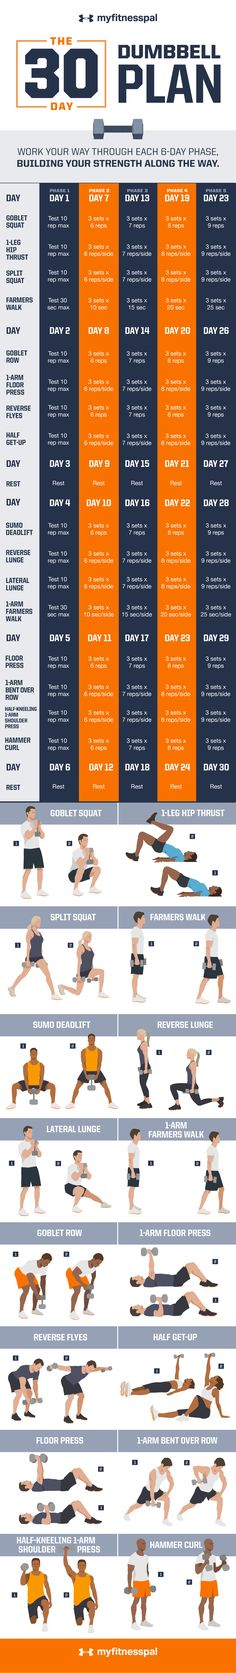 30 Day Dumbbell Plan workout.